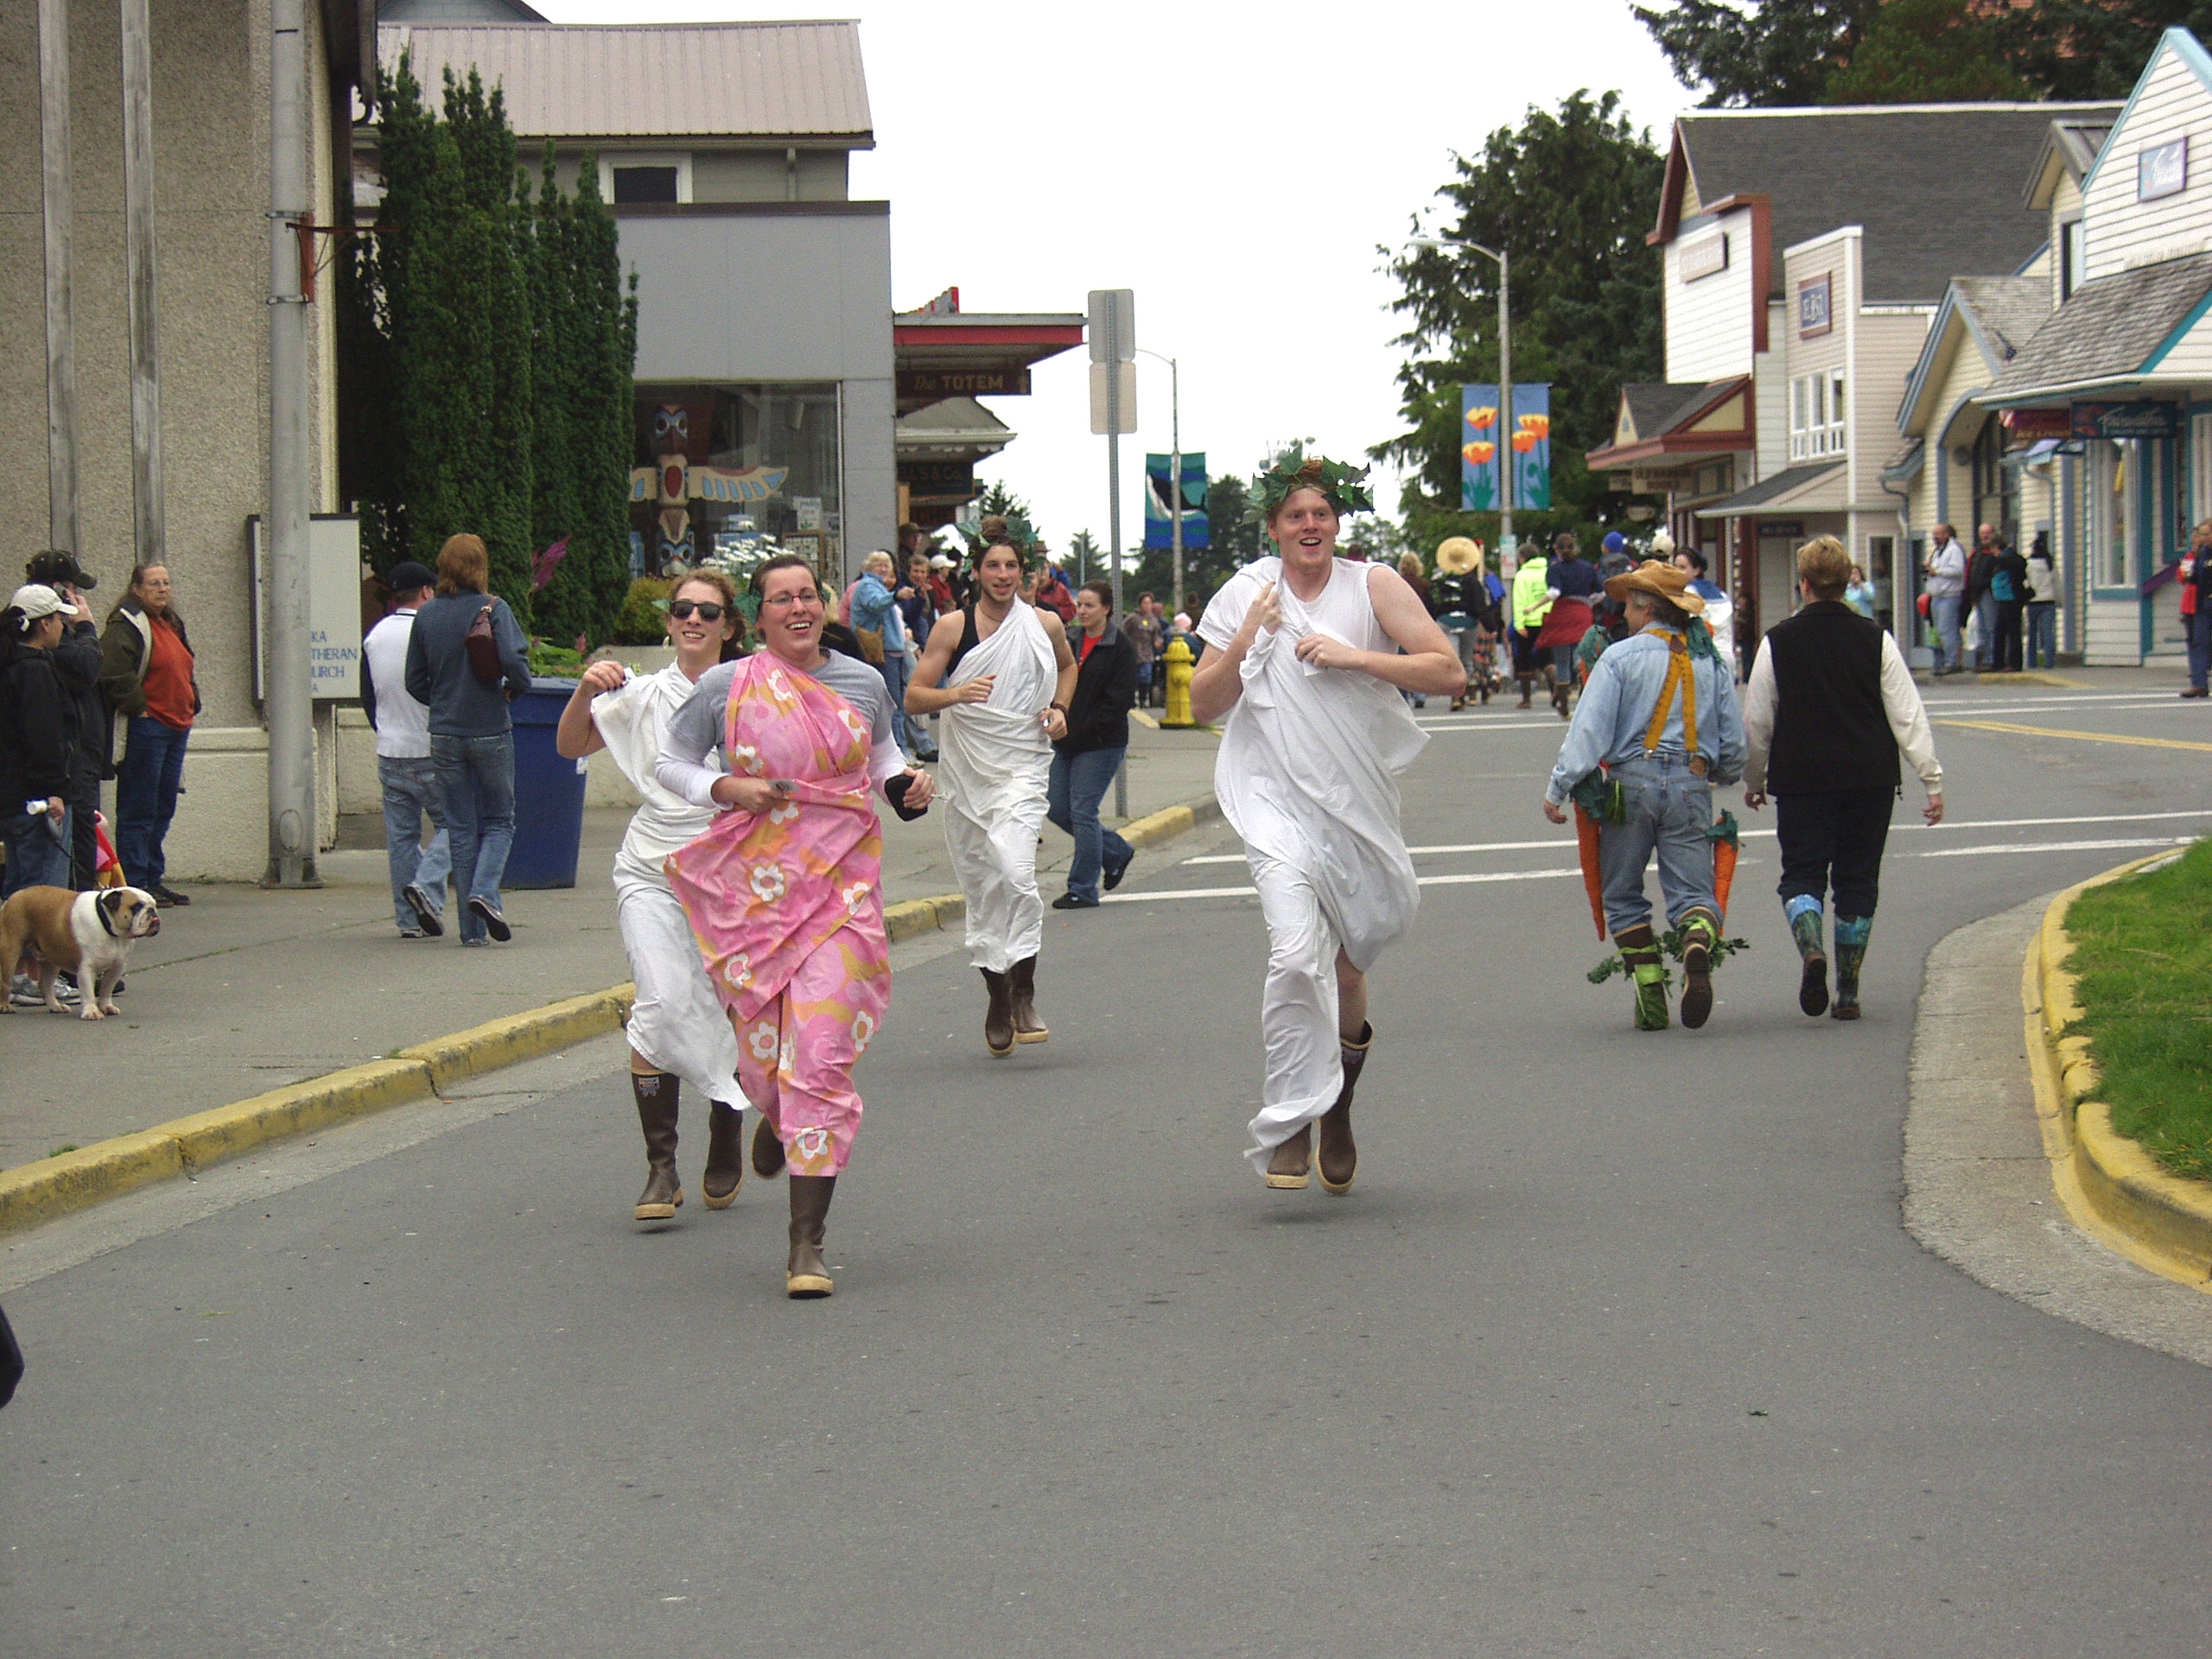 XtraTufs and togas are high fashion at the 2008 Running of the Boots